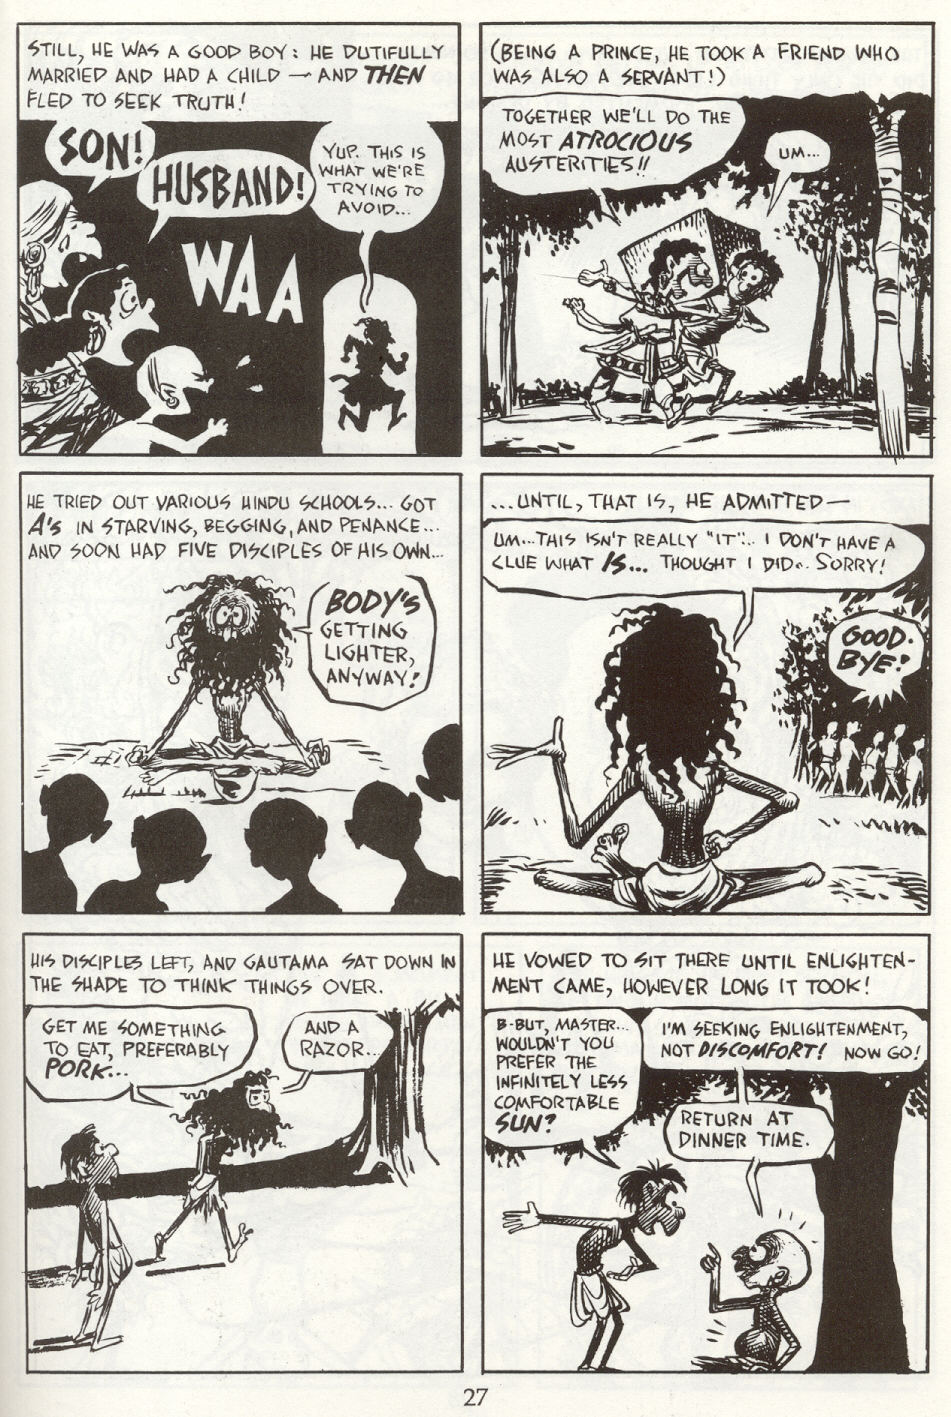 Read online The Cartoon History of the Universe comic -  Issue #8 - 30